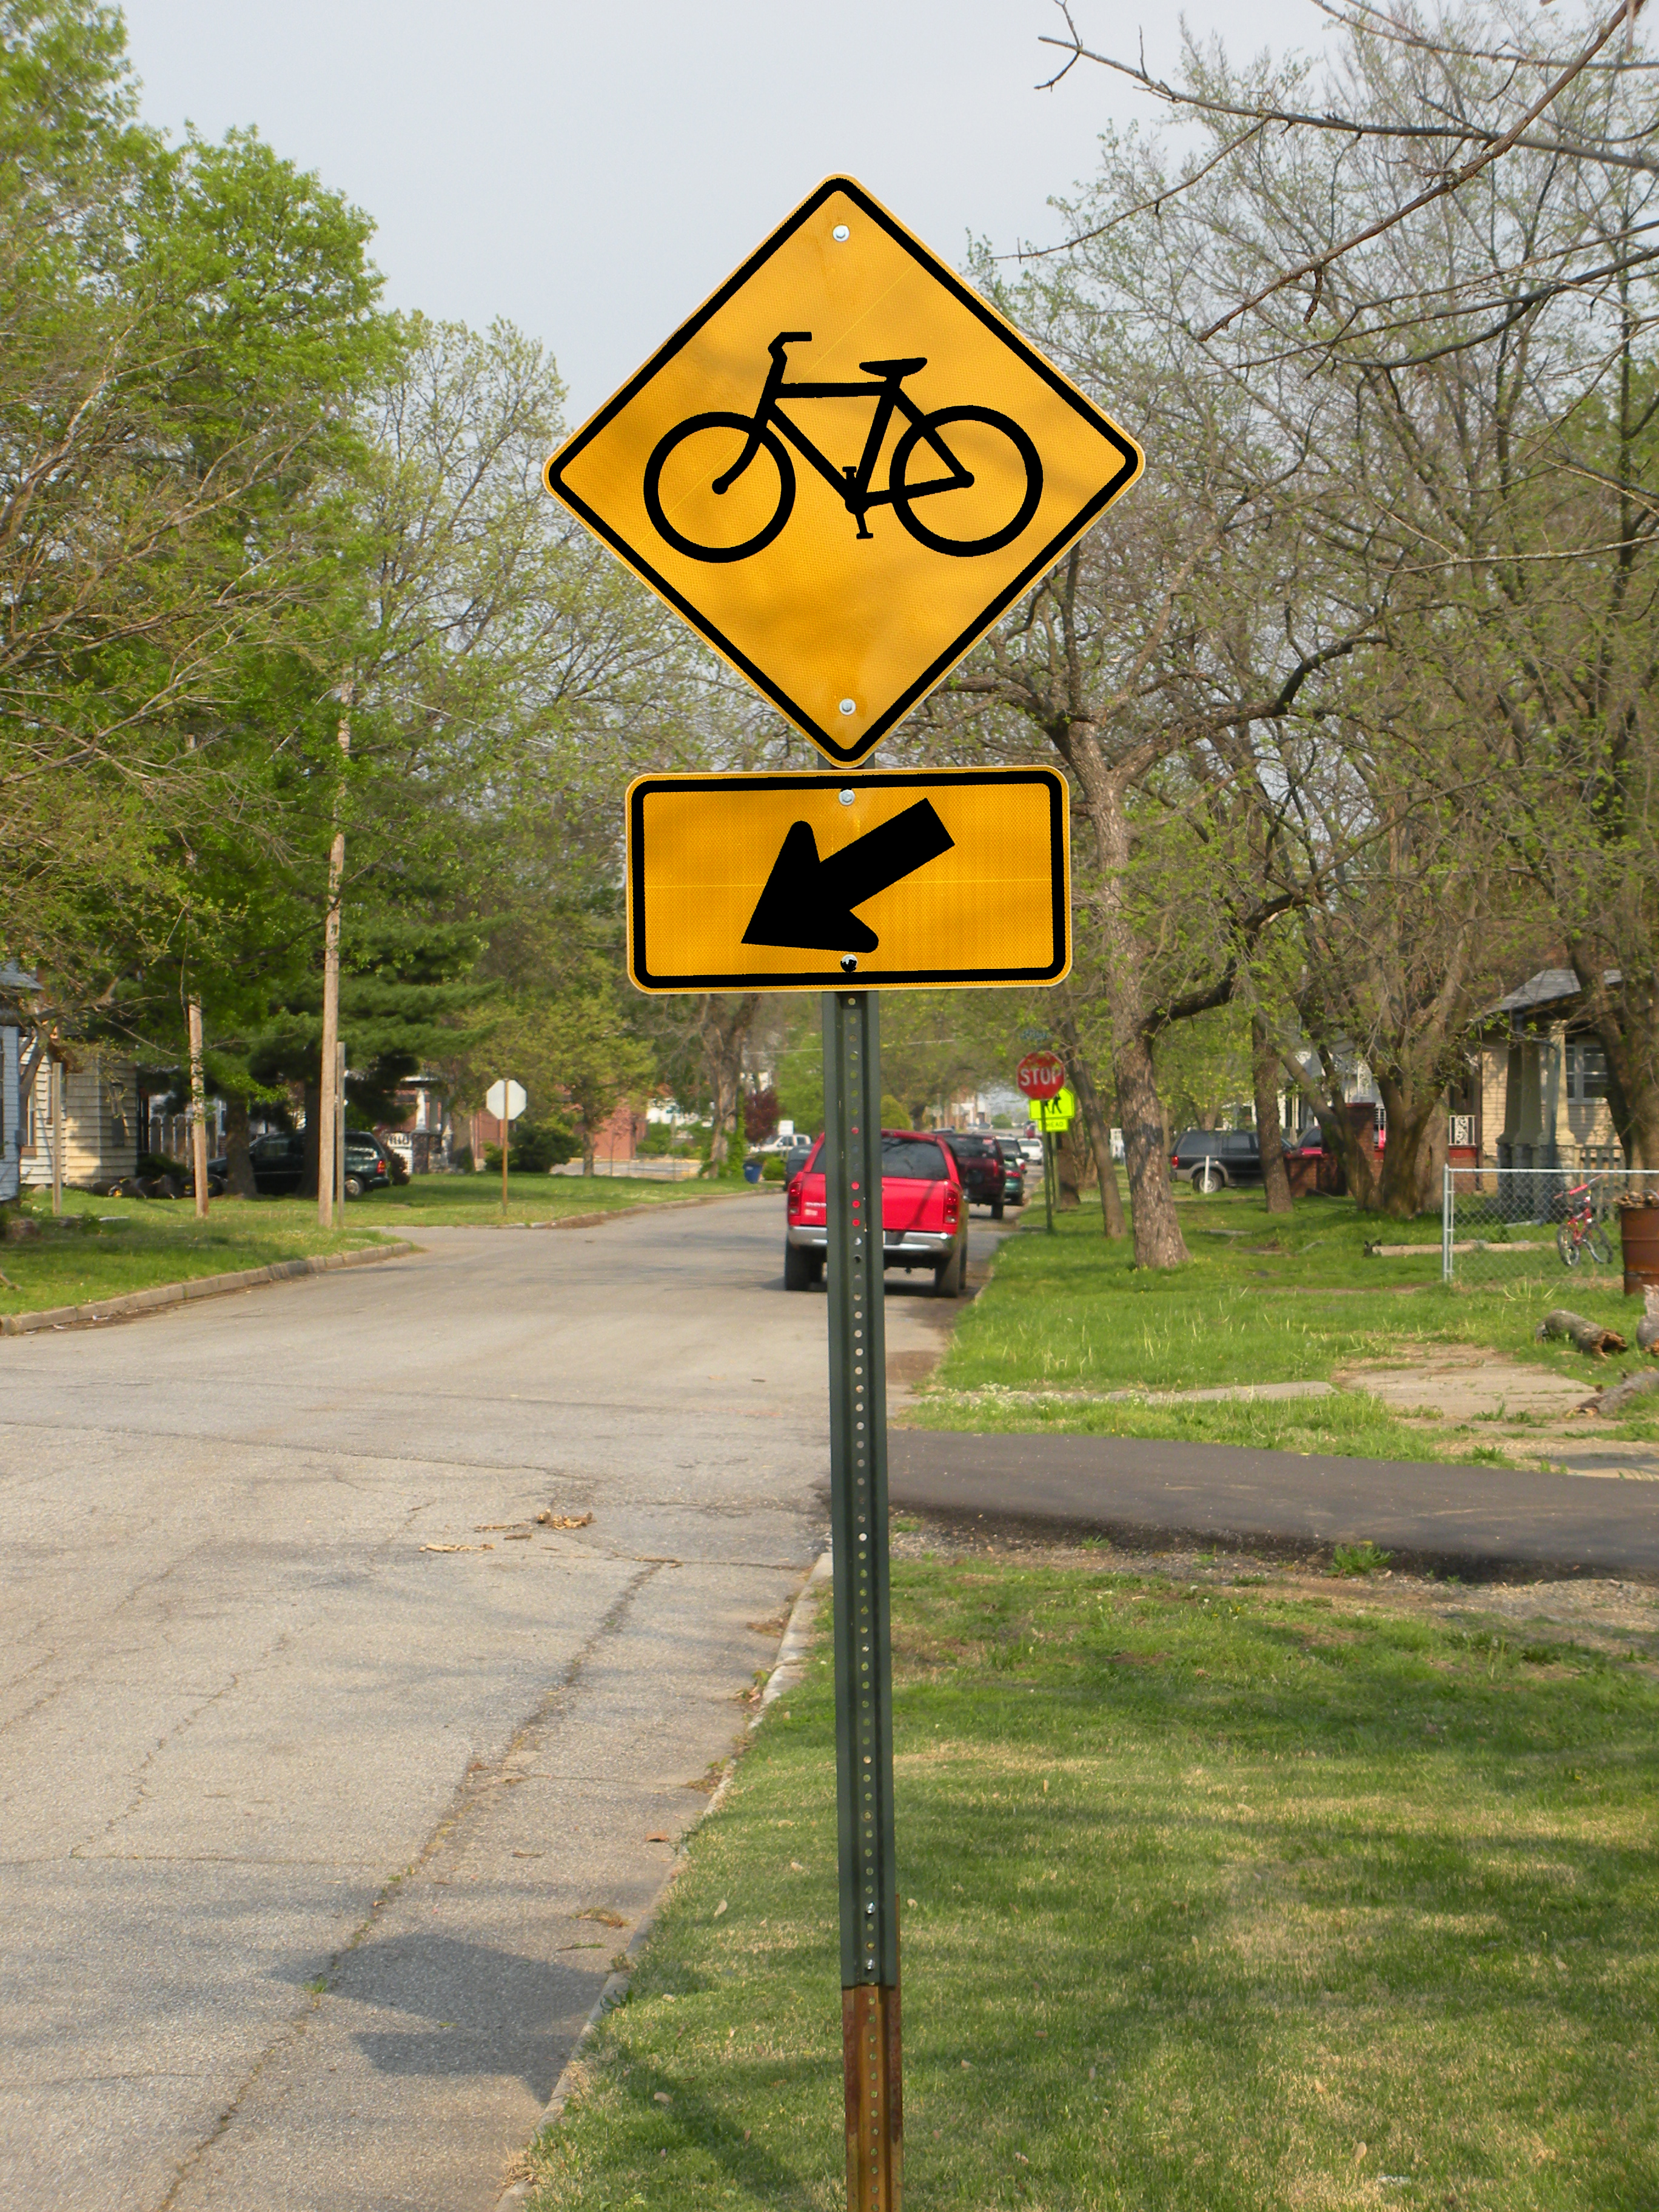 Bicycle sign along street, Arrow, Post, Town, Signage, HQ Photo